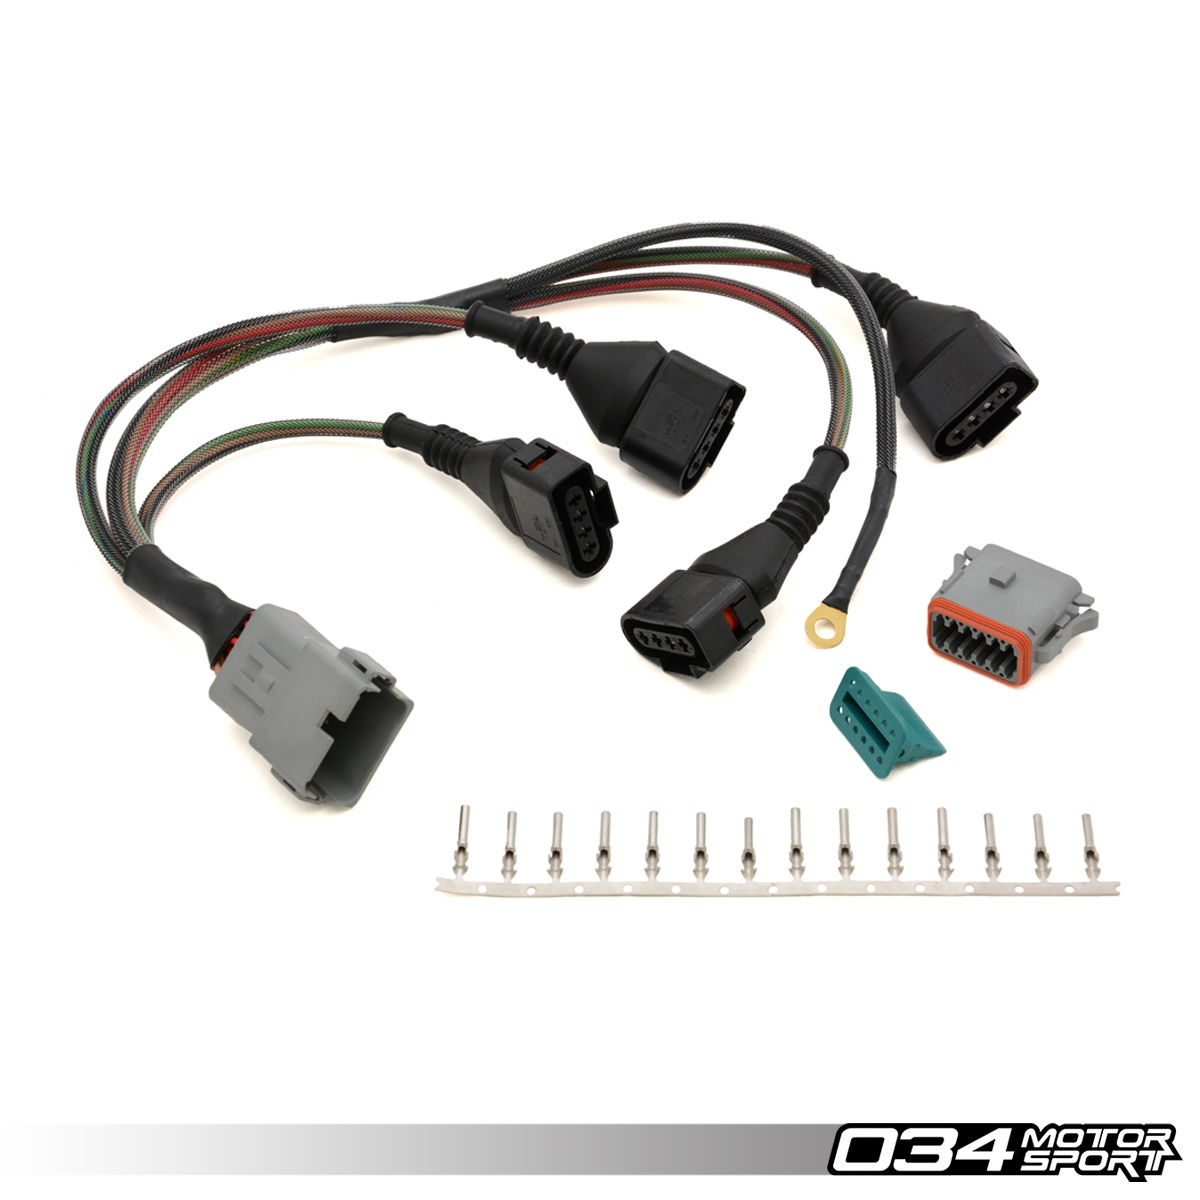 hight resolution of repair update harness audi volkswagen 1 8t with 4 wire coils 034 701 0004 034motorsport